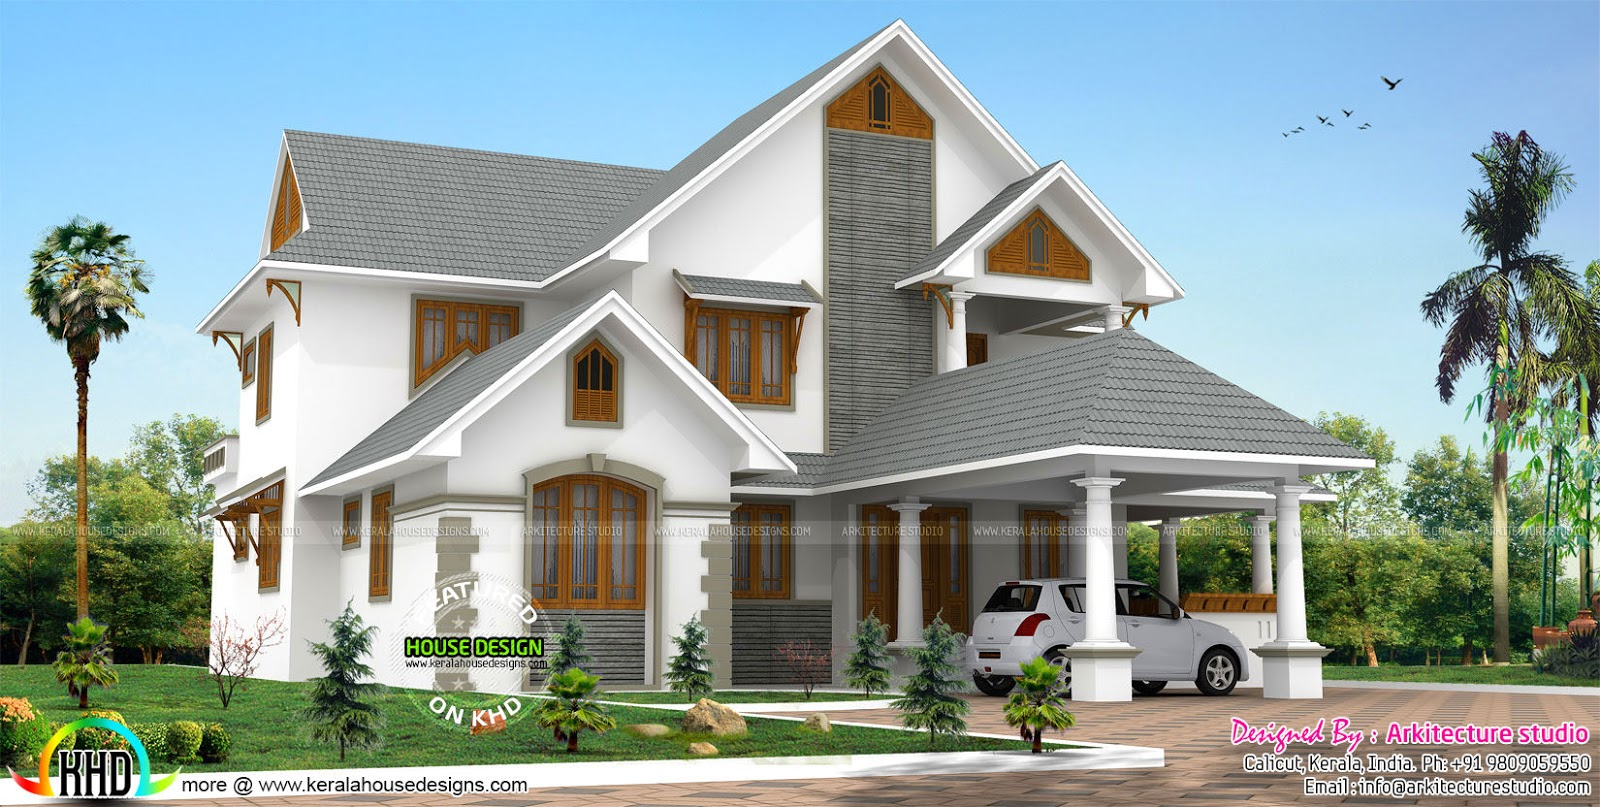 Sloping roof traditional style luxury home kerala home design and floor plans - Traditional houses attic ...